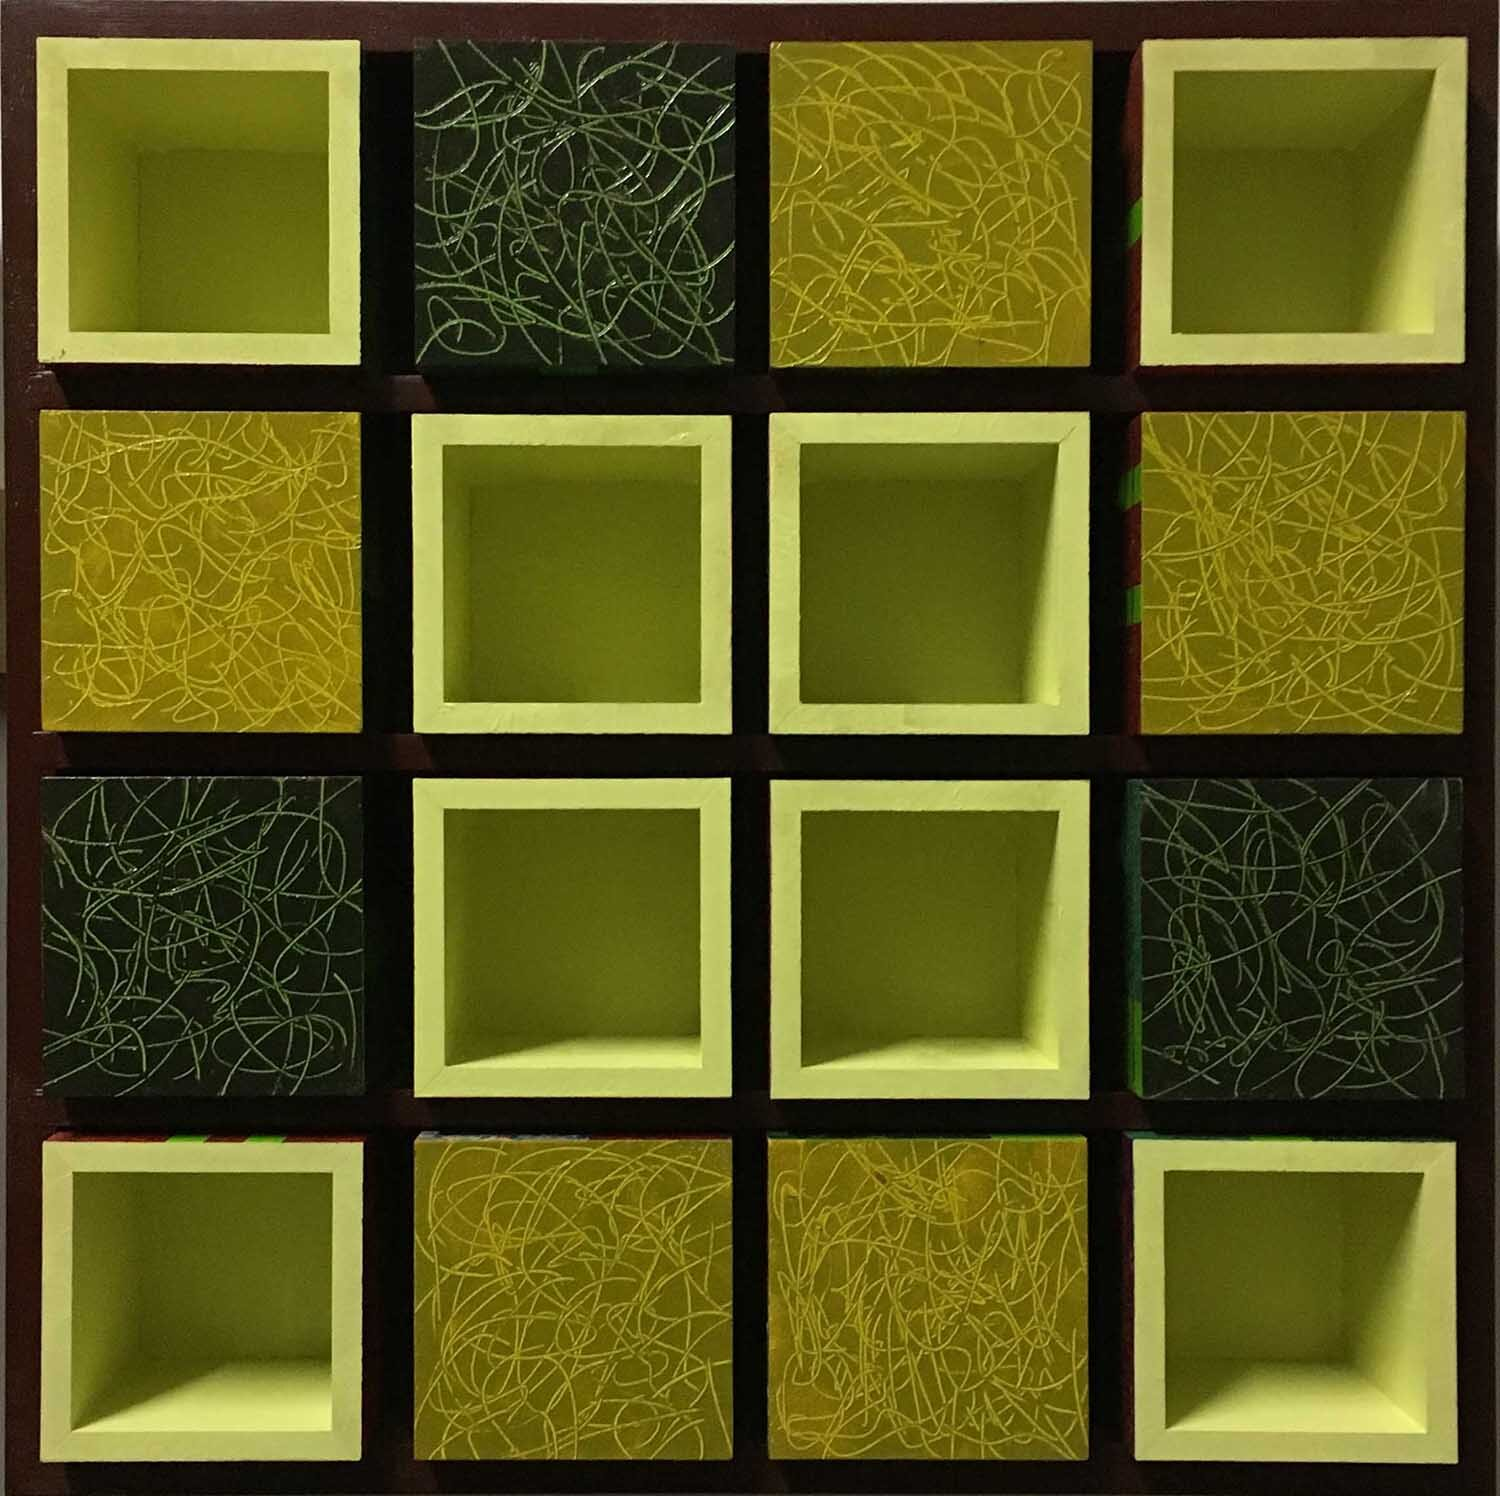 16 open boxes in wooden cabinet - size 48 x 48 cm